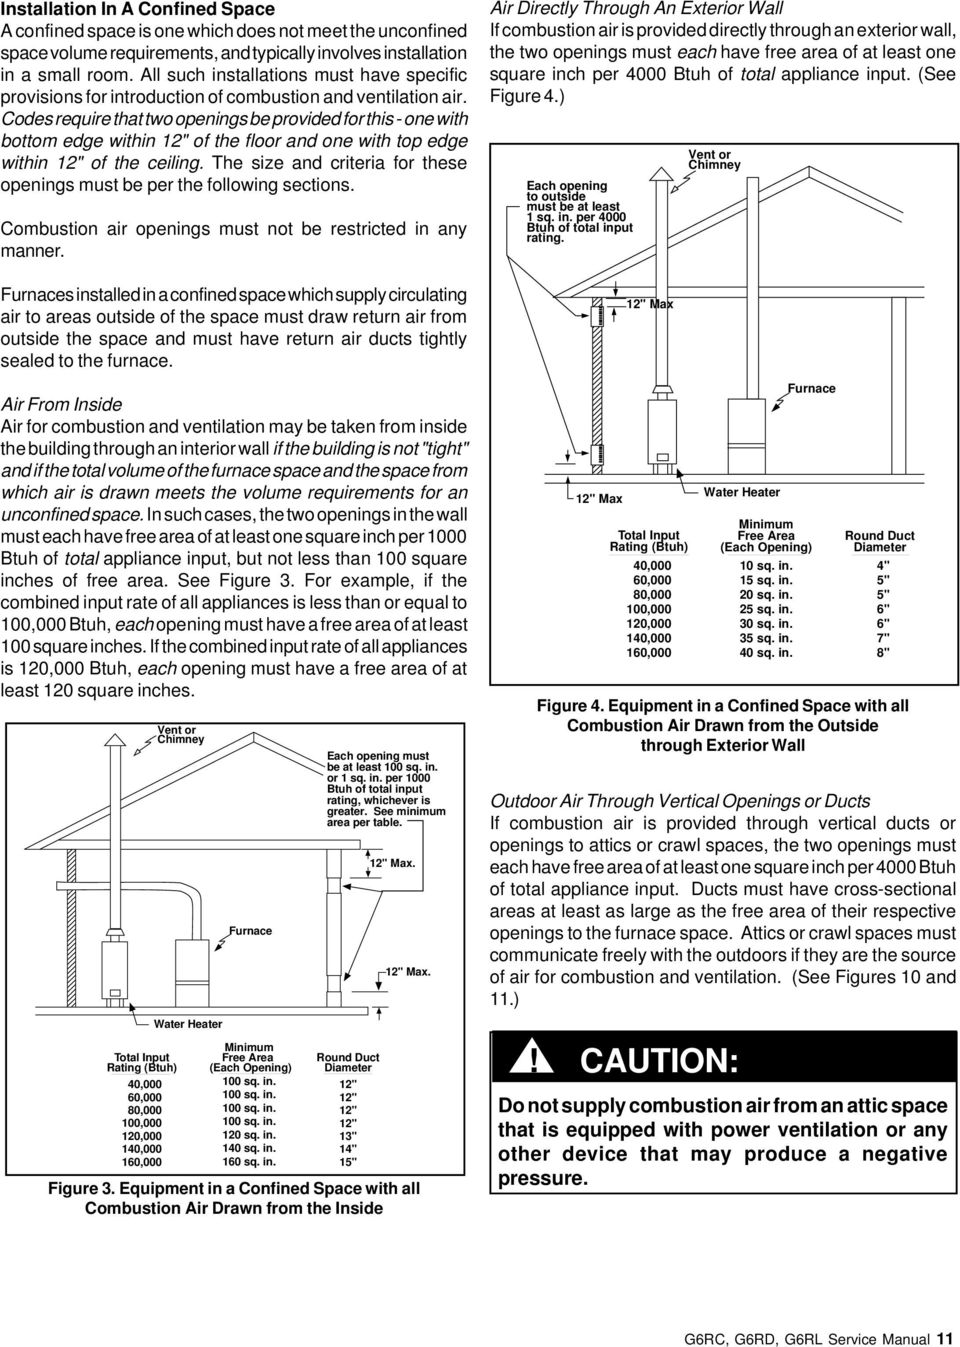 Kenmore s8207 sf5311 board schematic diagram wiring diagram figure g6 typical clothes dryer wiring diagram wiring data u2022 kenmore dishwasher parts diagram kenmore s8207 sf5311 board schematic diagram cheapraybanclubmaster Images